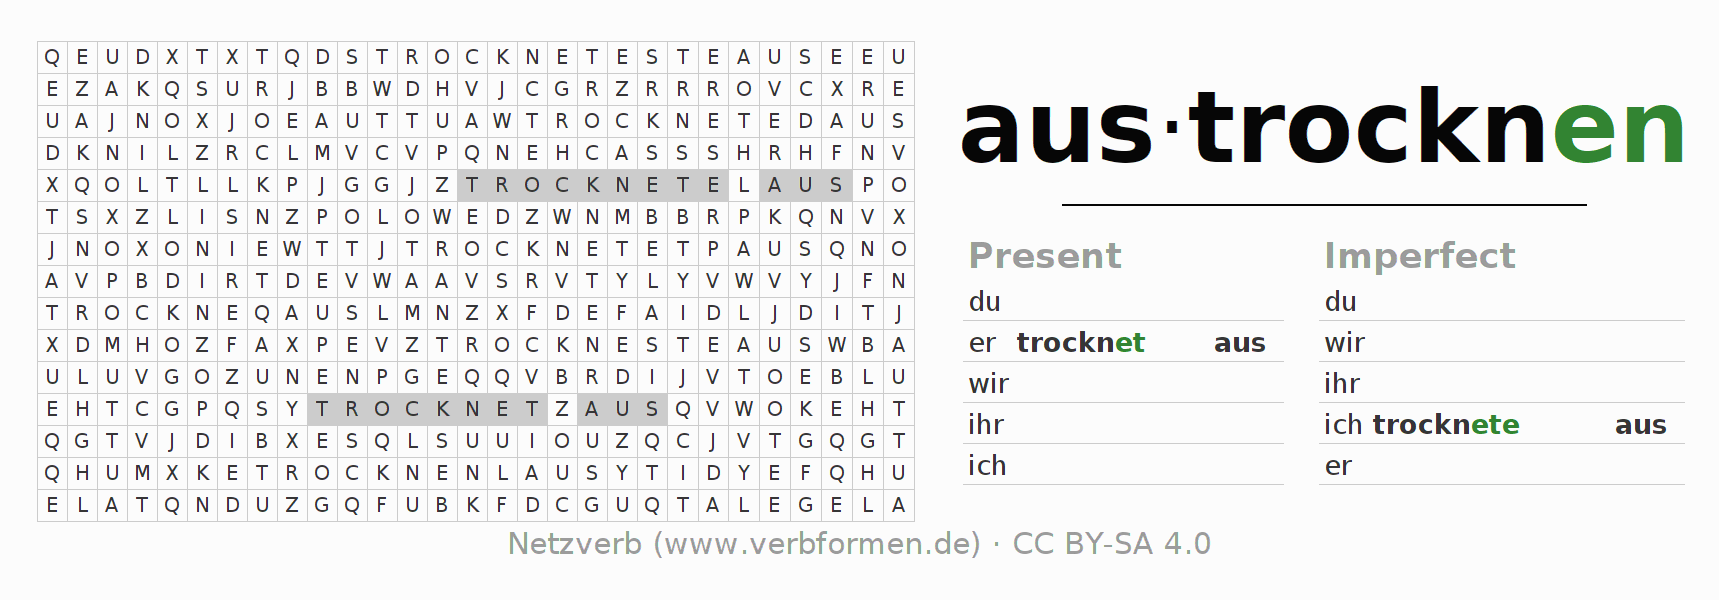 Word search puzzle for the conjugation of the verb austrocknen (ist)